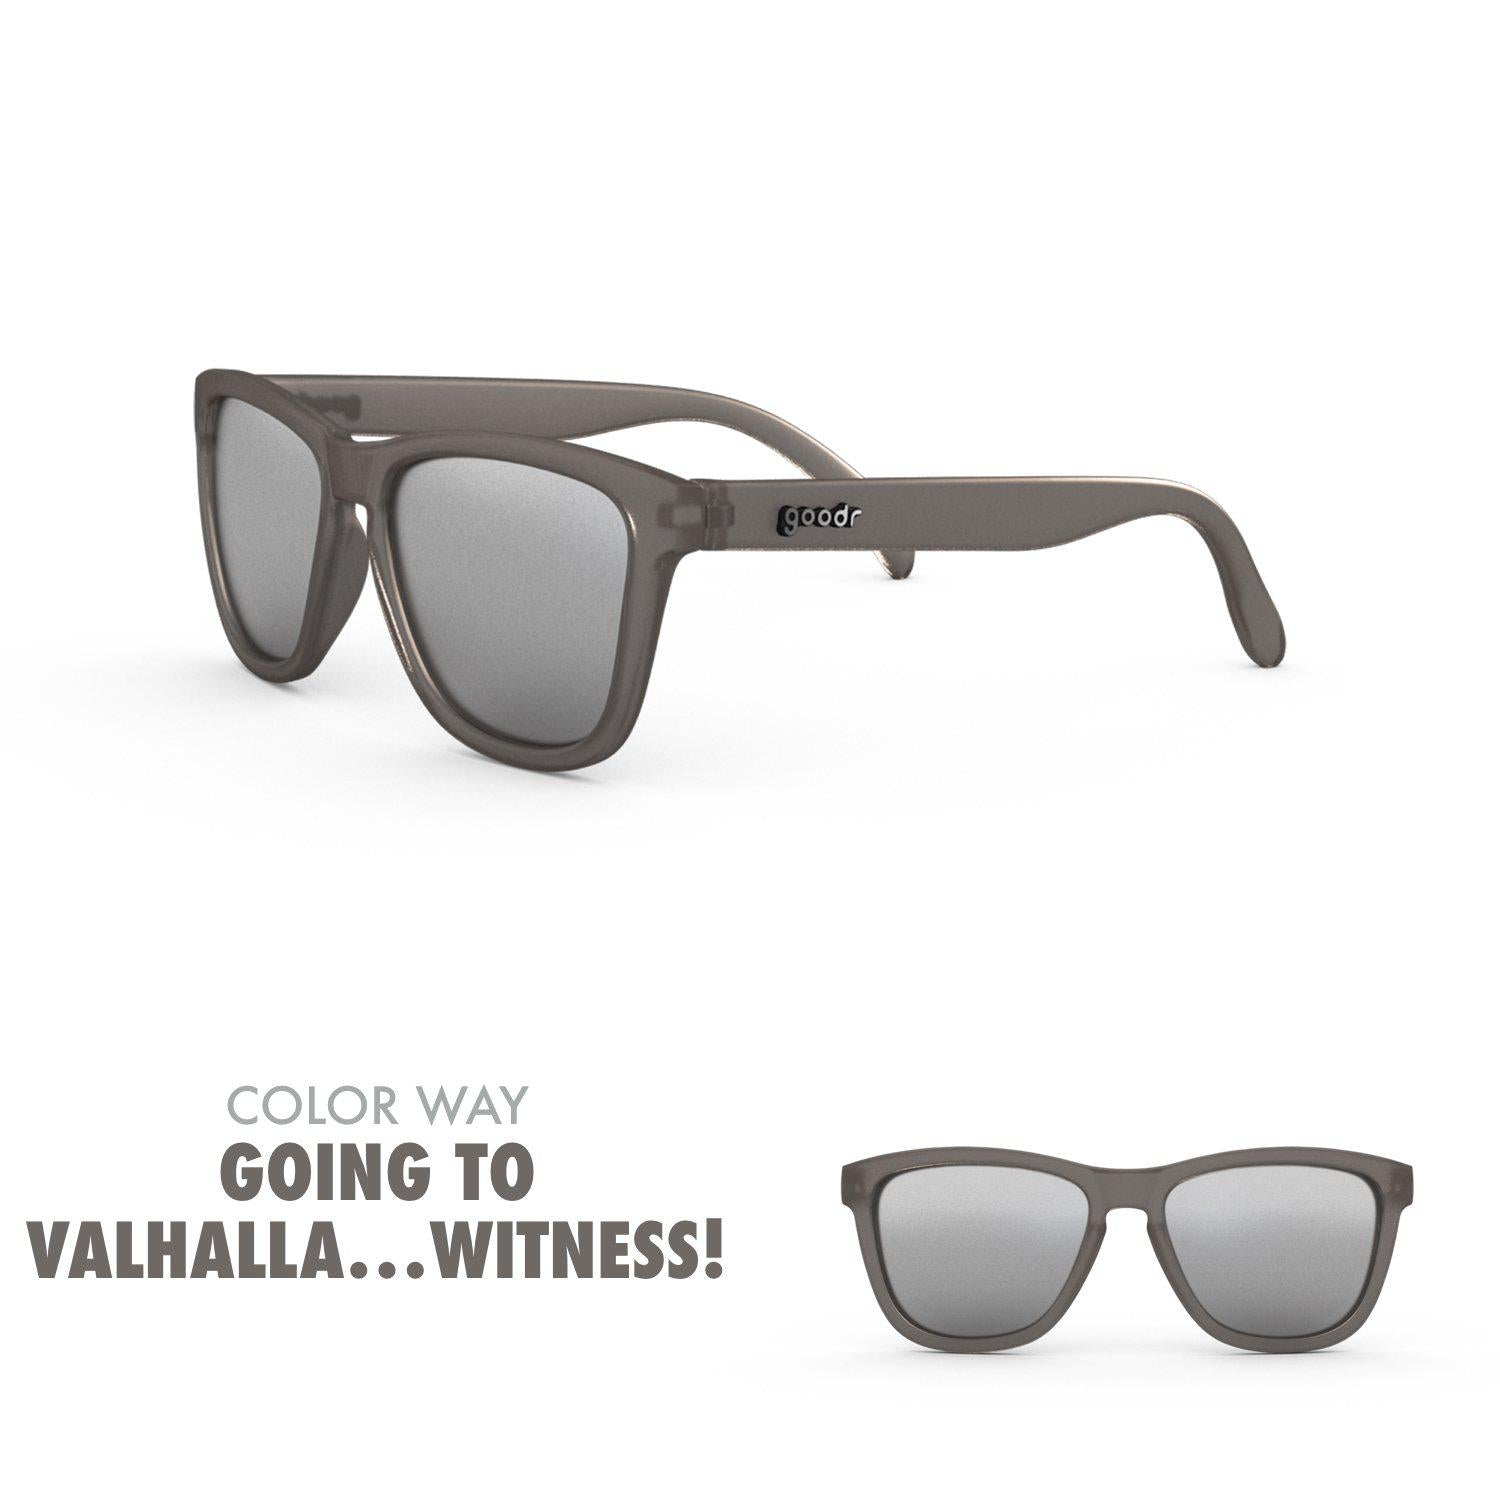 Goodr Running Sun Glasses-Clothing Accessories-Goodr-Going to Valhalla... Witness-2 Foot Adventures